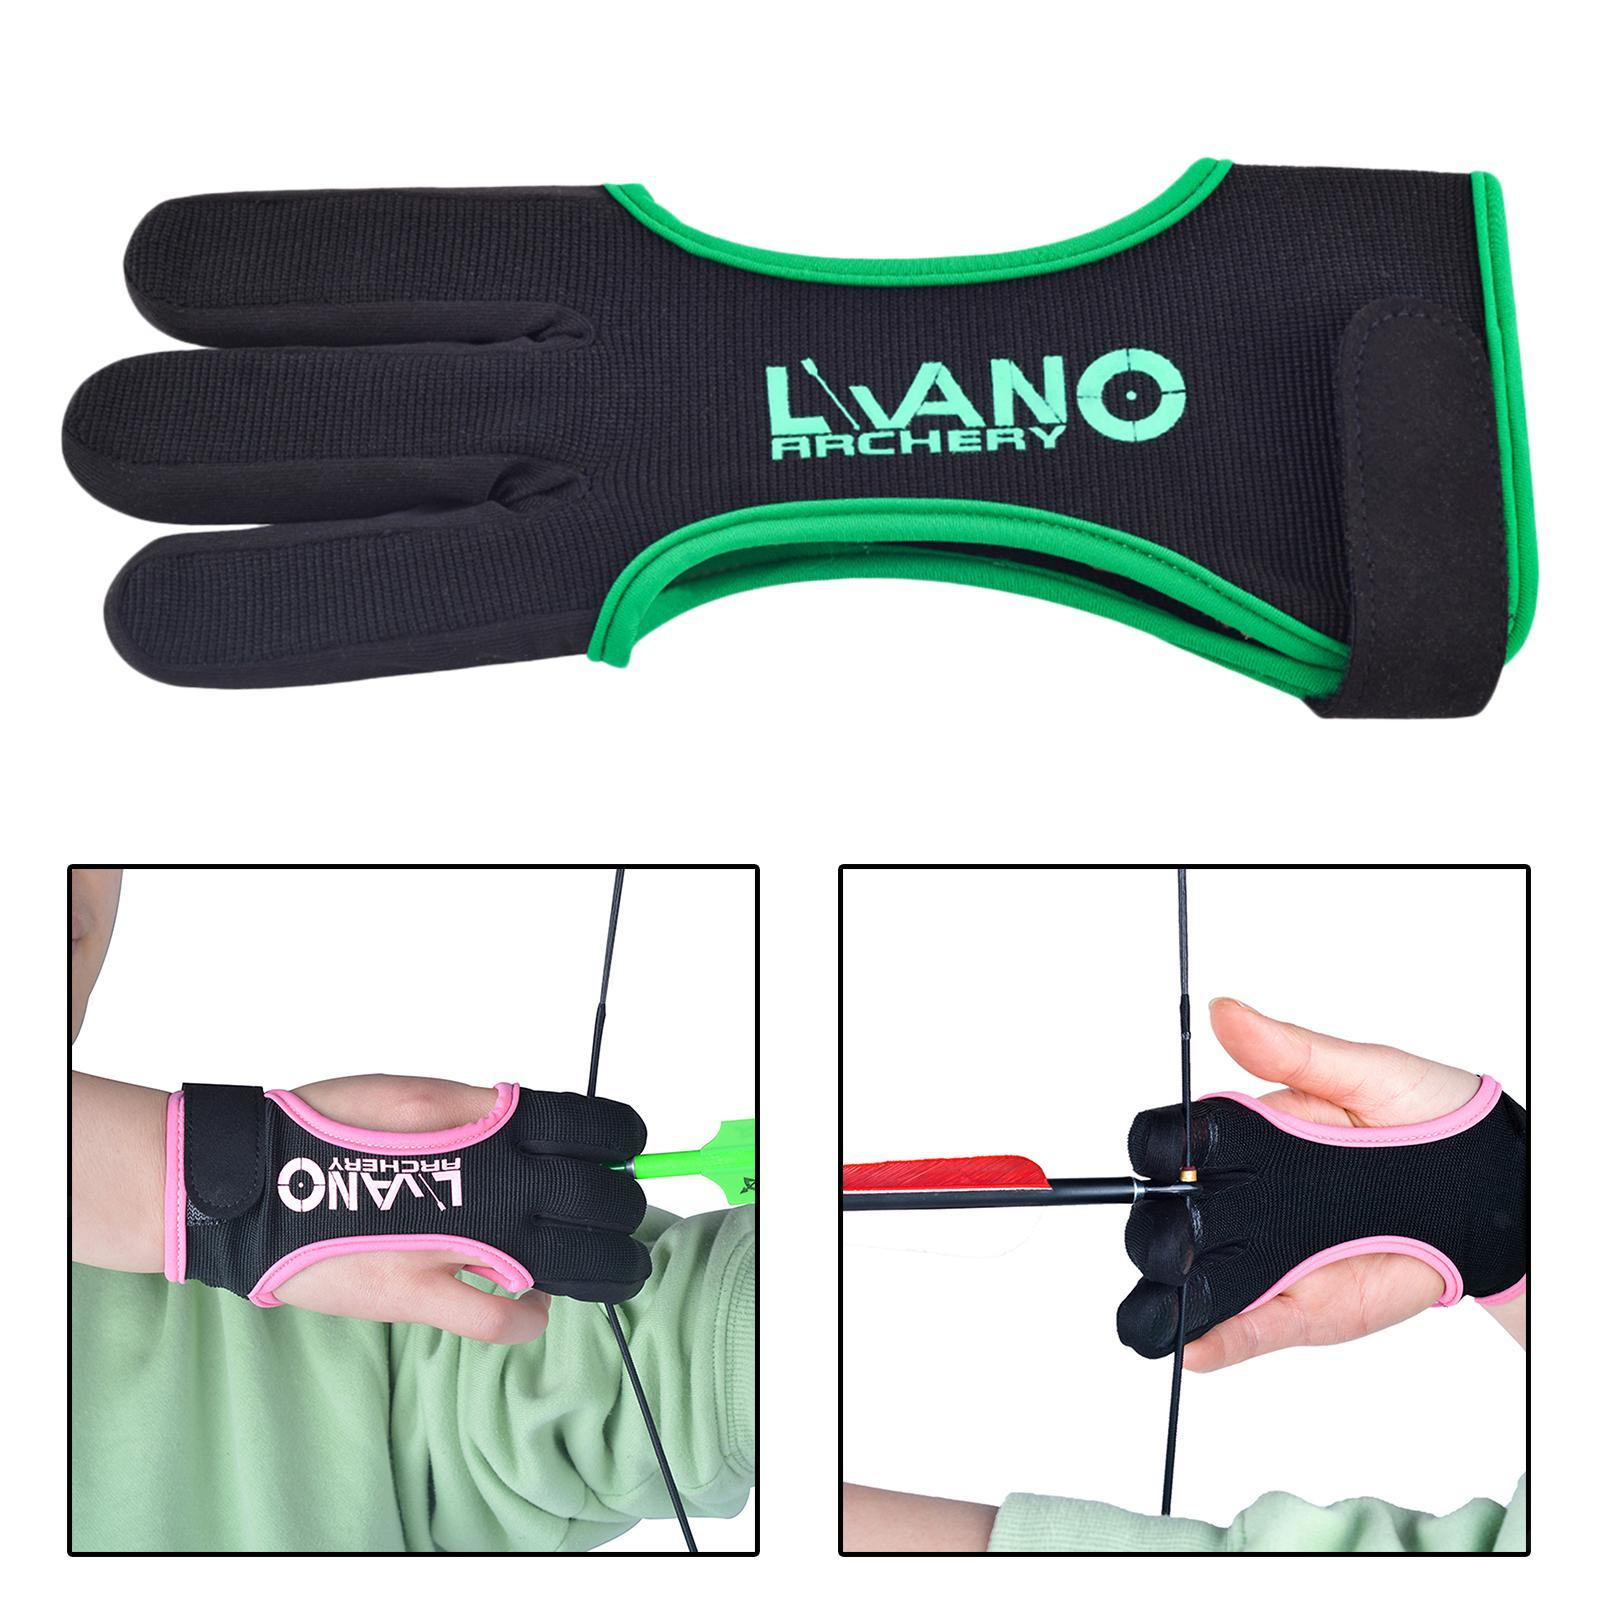 thumbnail 17 - Archery Glove for Recurve Compound Bow 3Finger Leather Guard for Women Men Youth